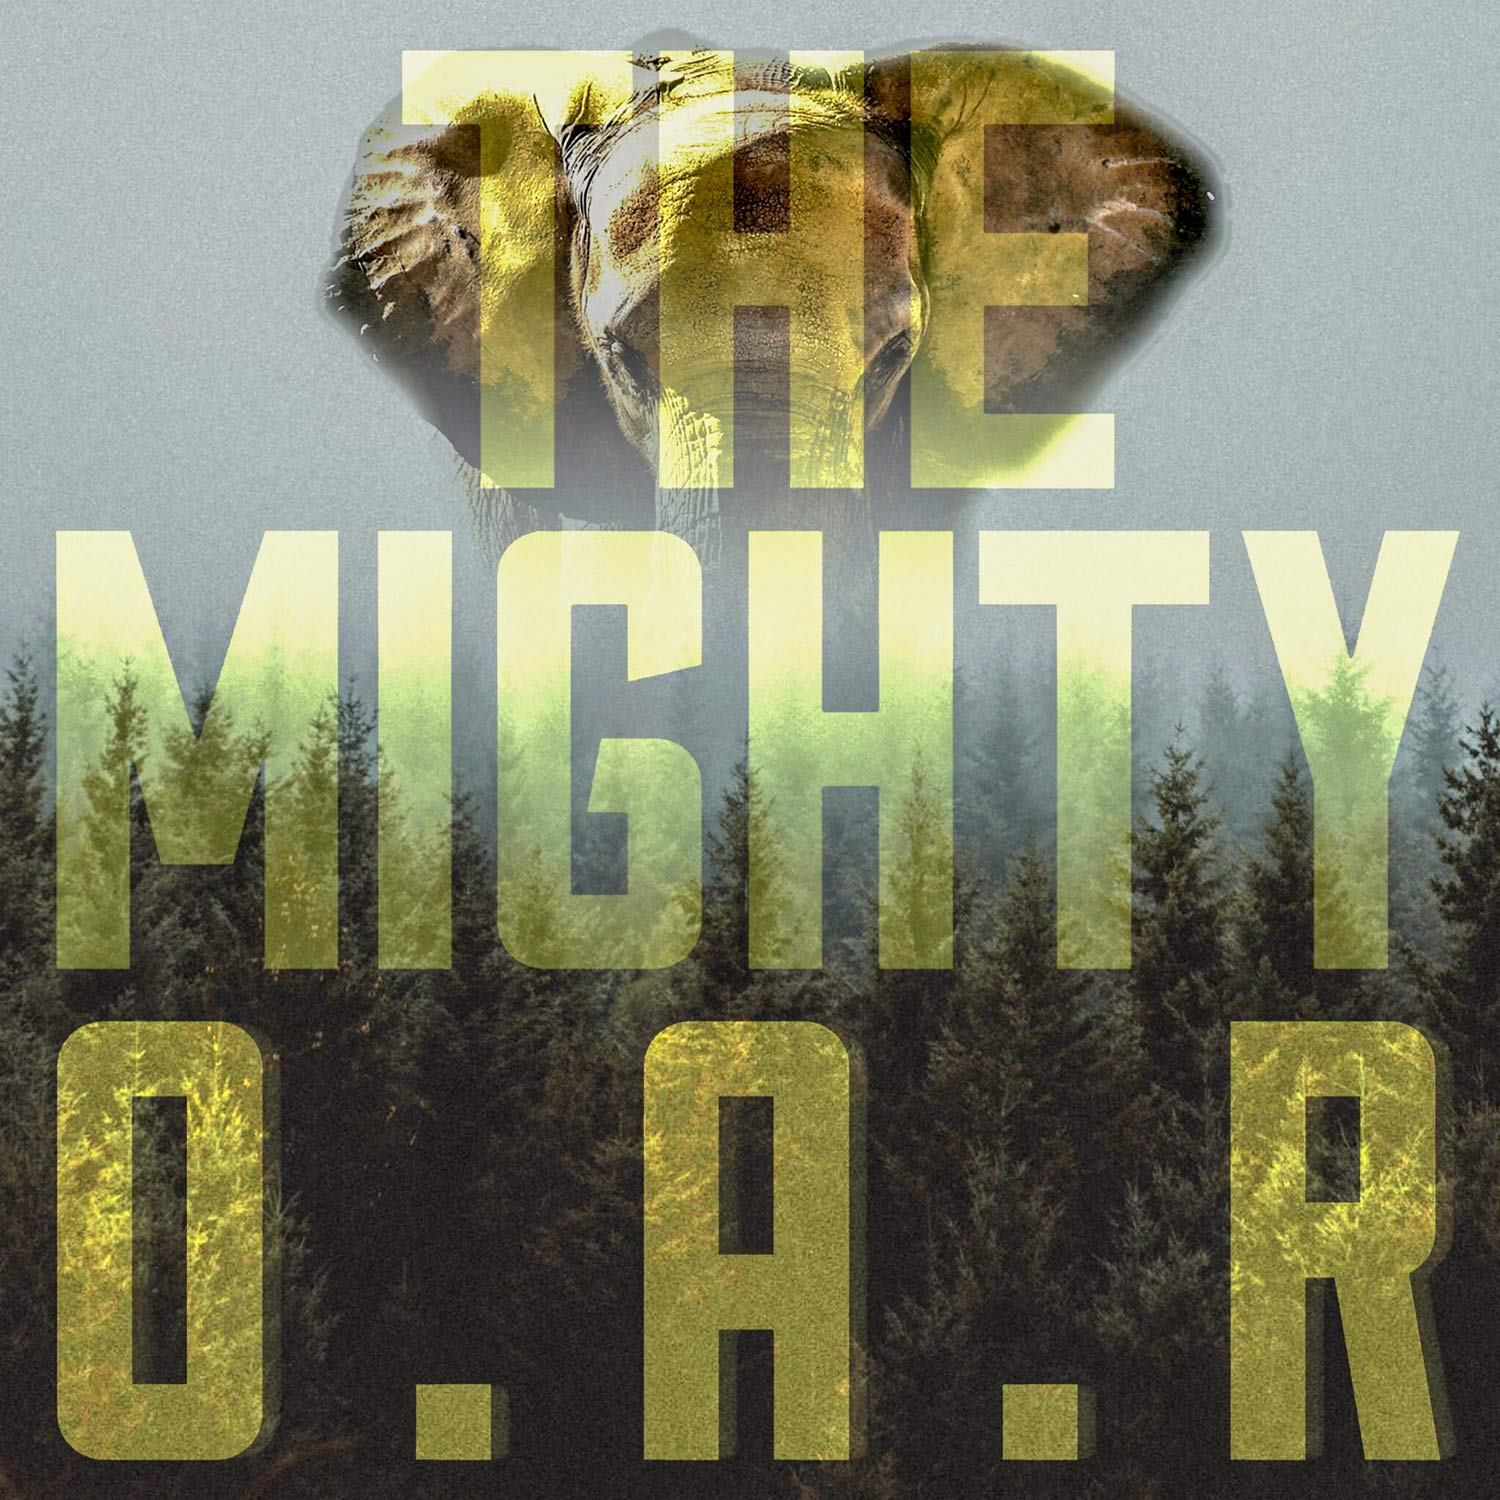 O.A.R. - The Mighty [180g Vinyl / Coke Bottle Green LP / Clear Pink 7in Vinyl]